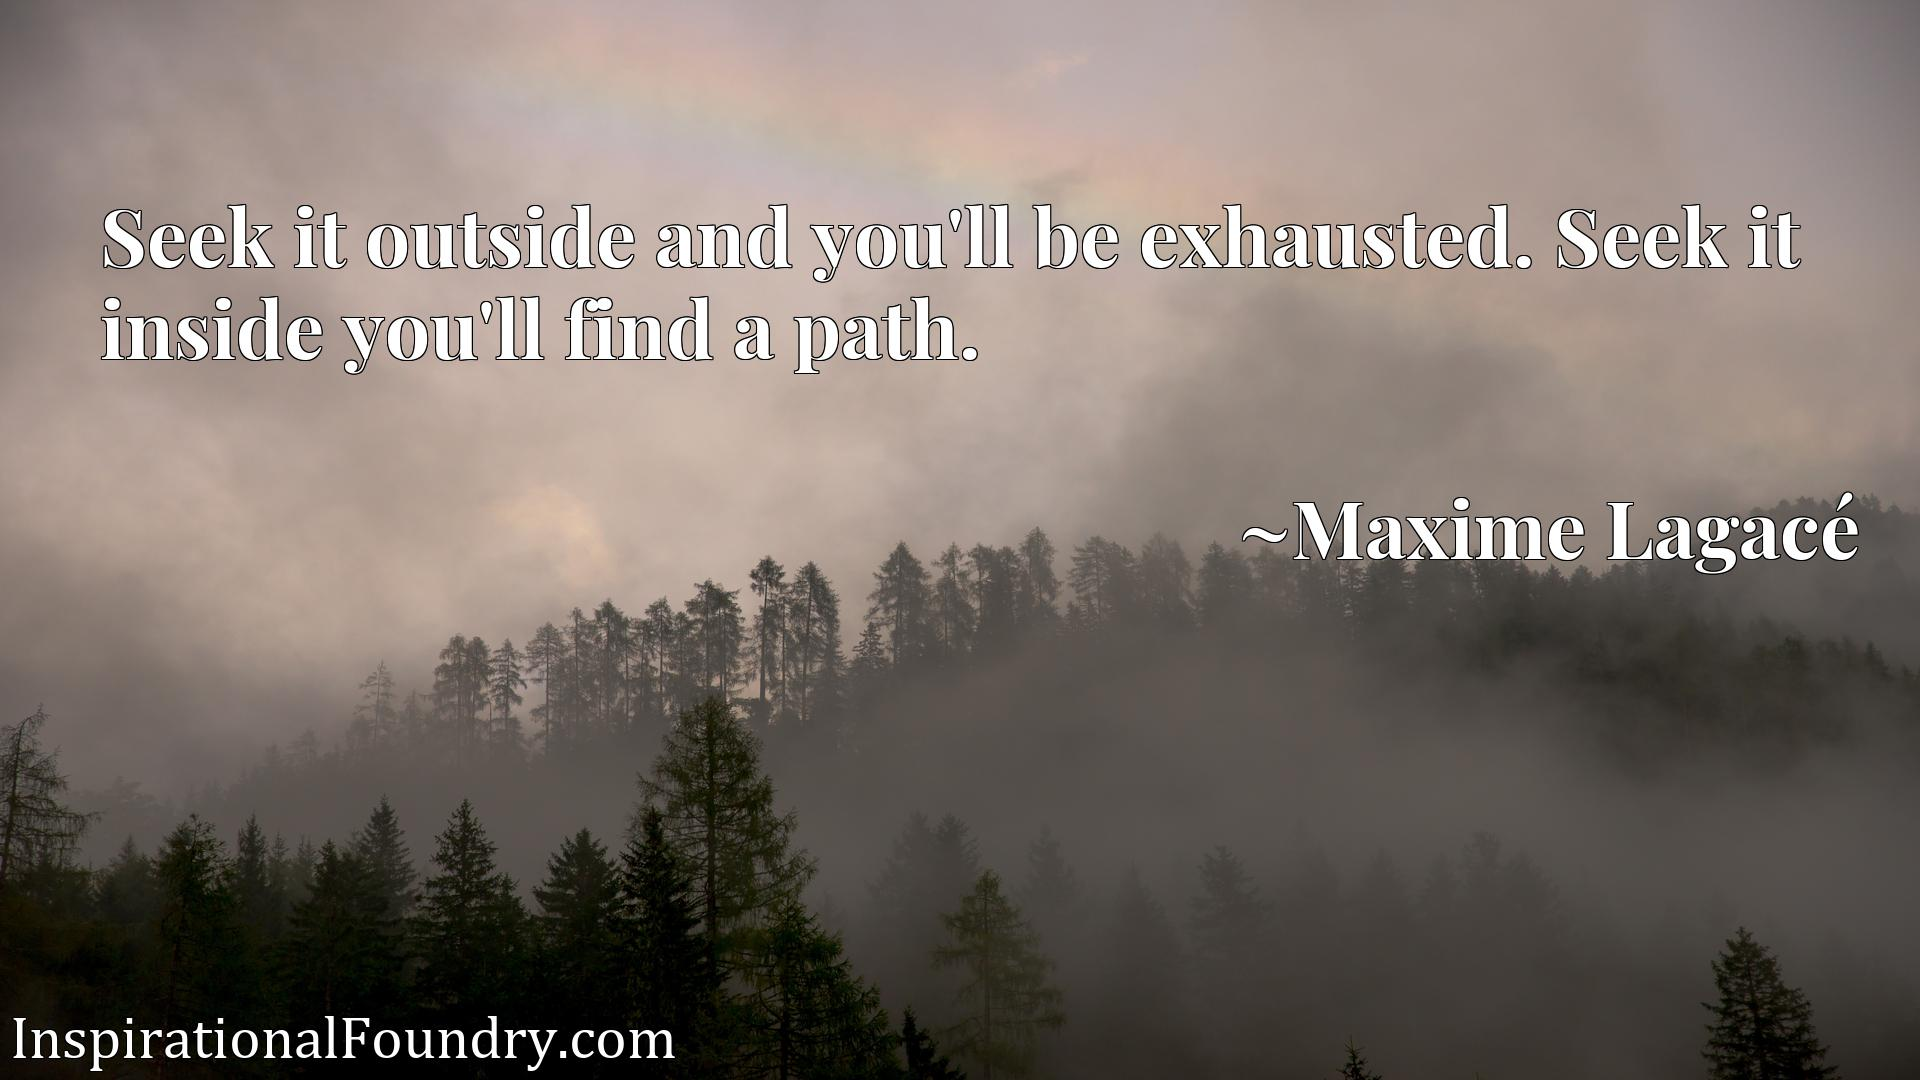 Seek it outside and you'll be exhausted. Seek it inside you'll find a path.